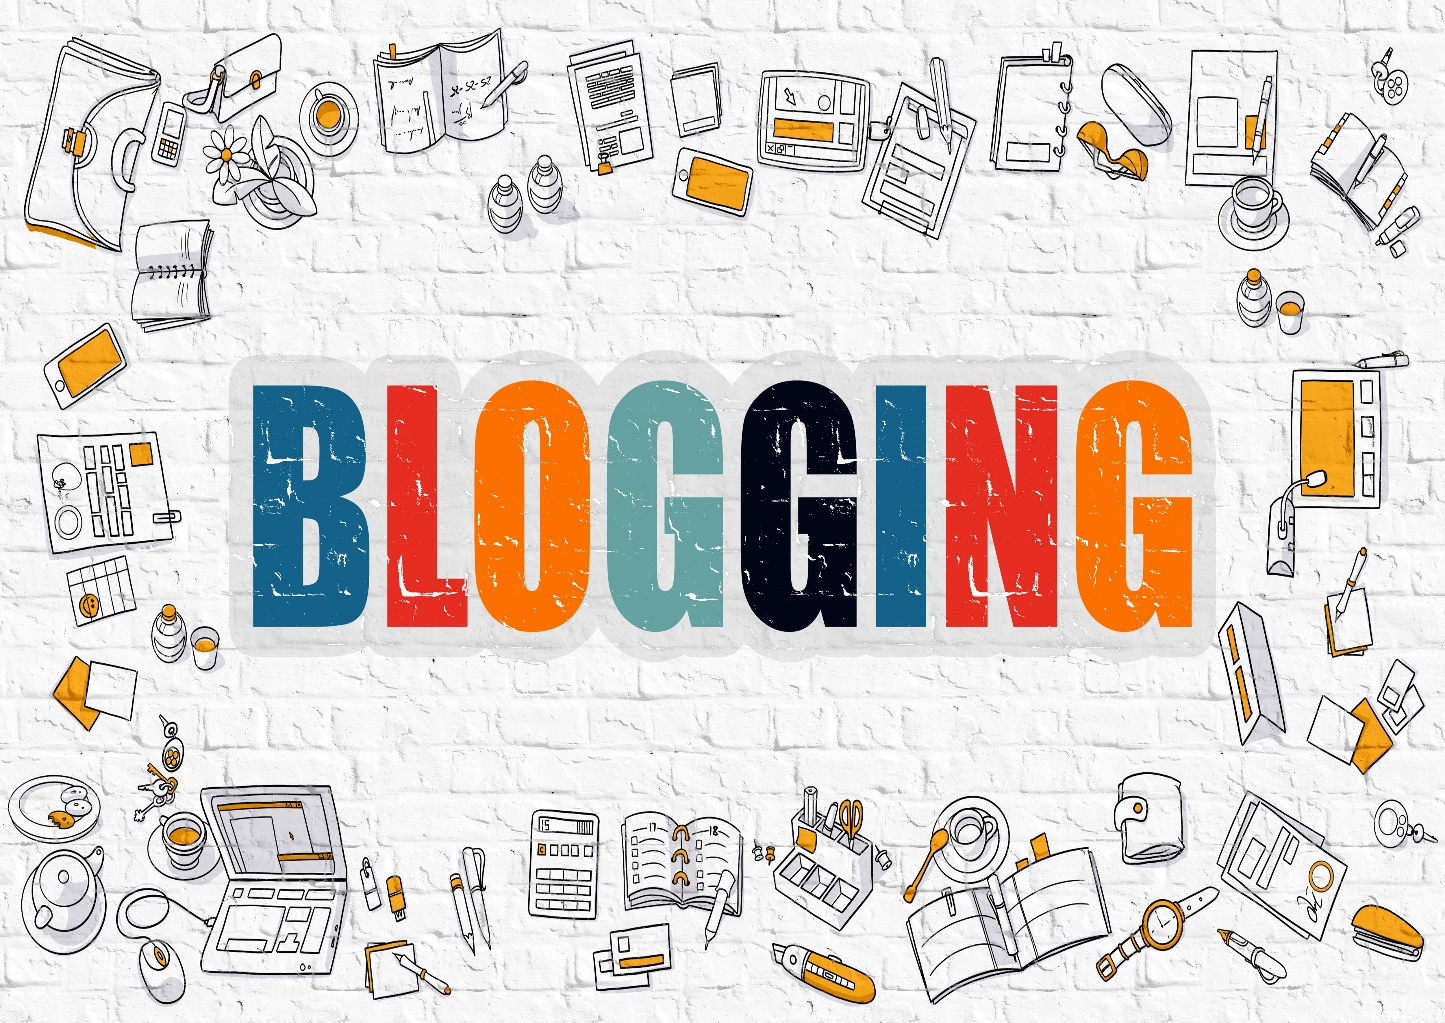 What Are The Benefits For Students From Blogging